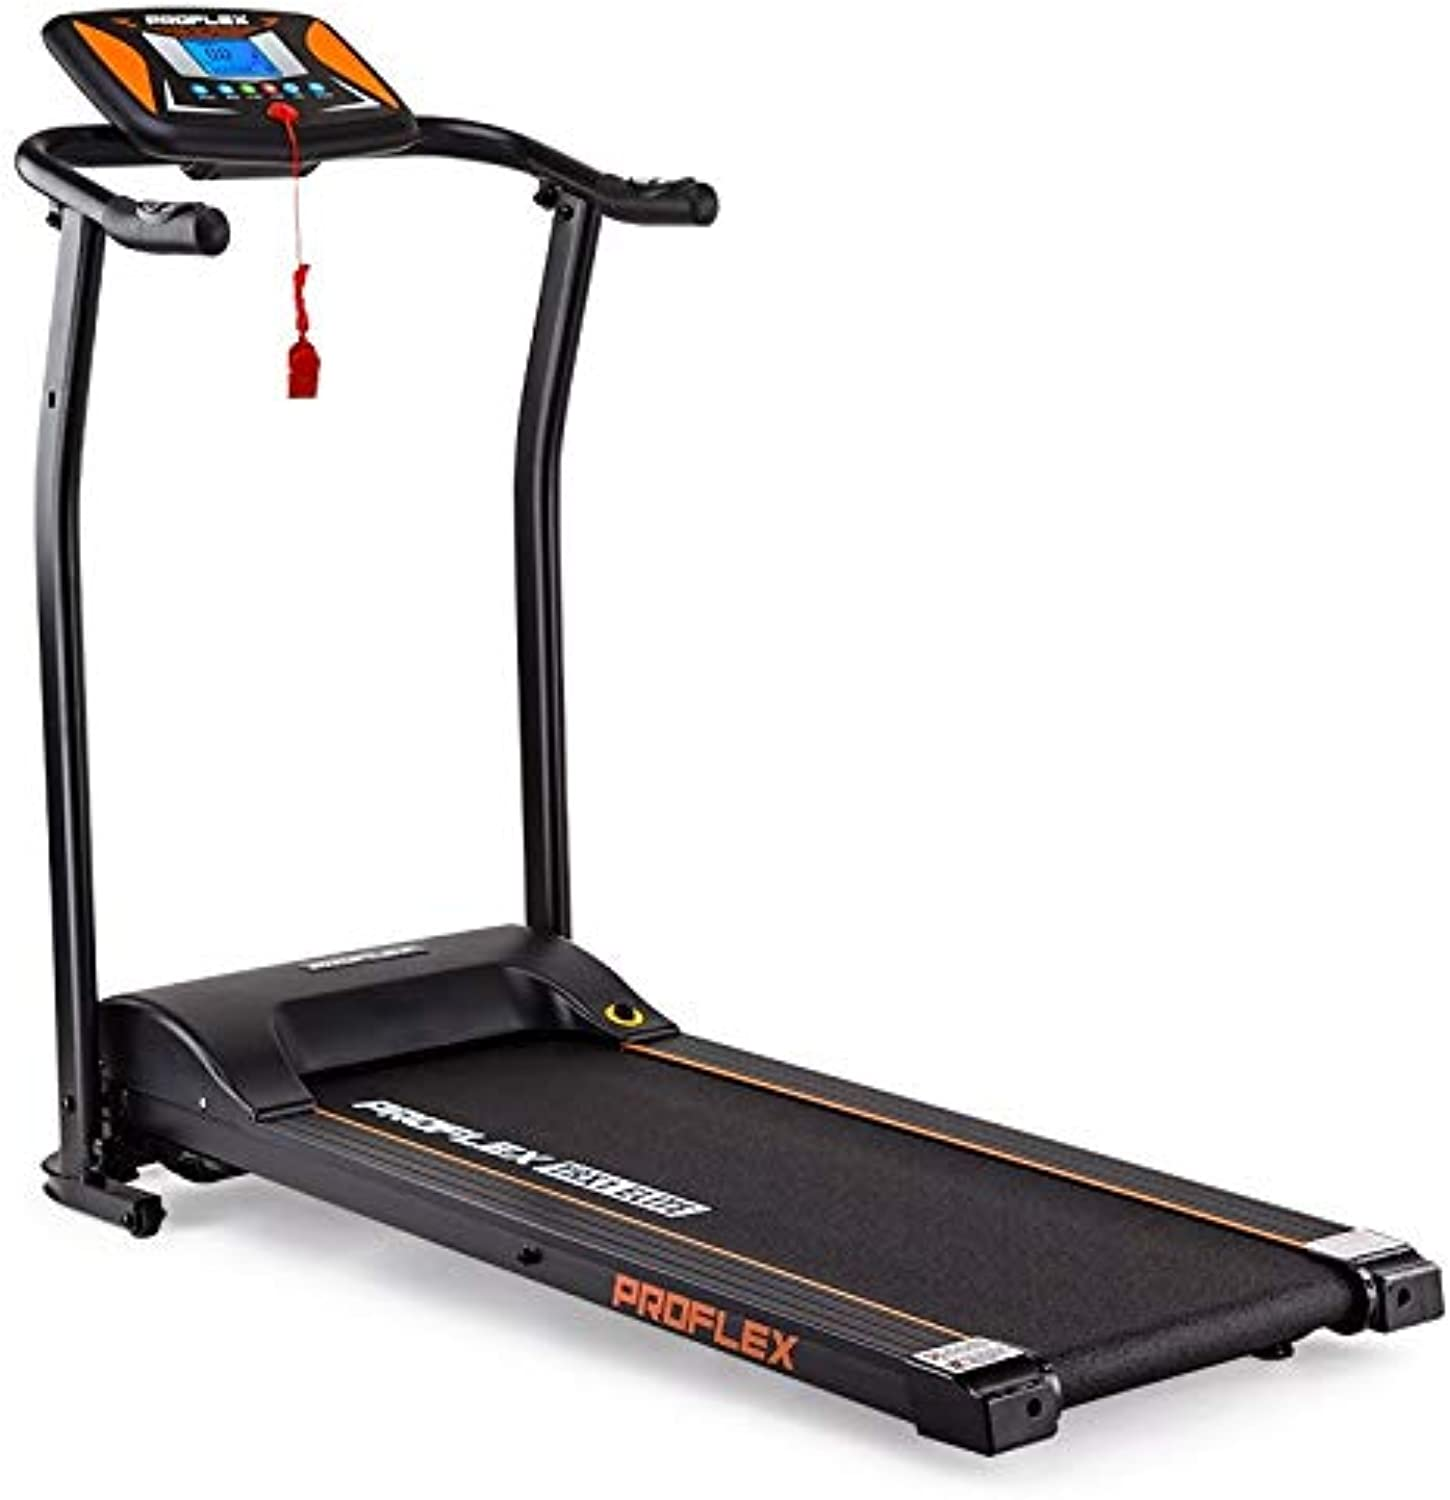 ProFlex TRX1 Elite 1.5CHP 14Speed Electric Treadmill with 12 Training Programs